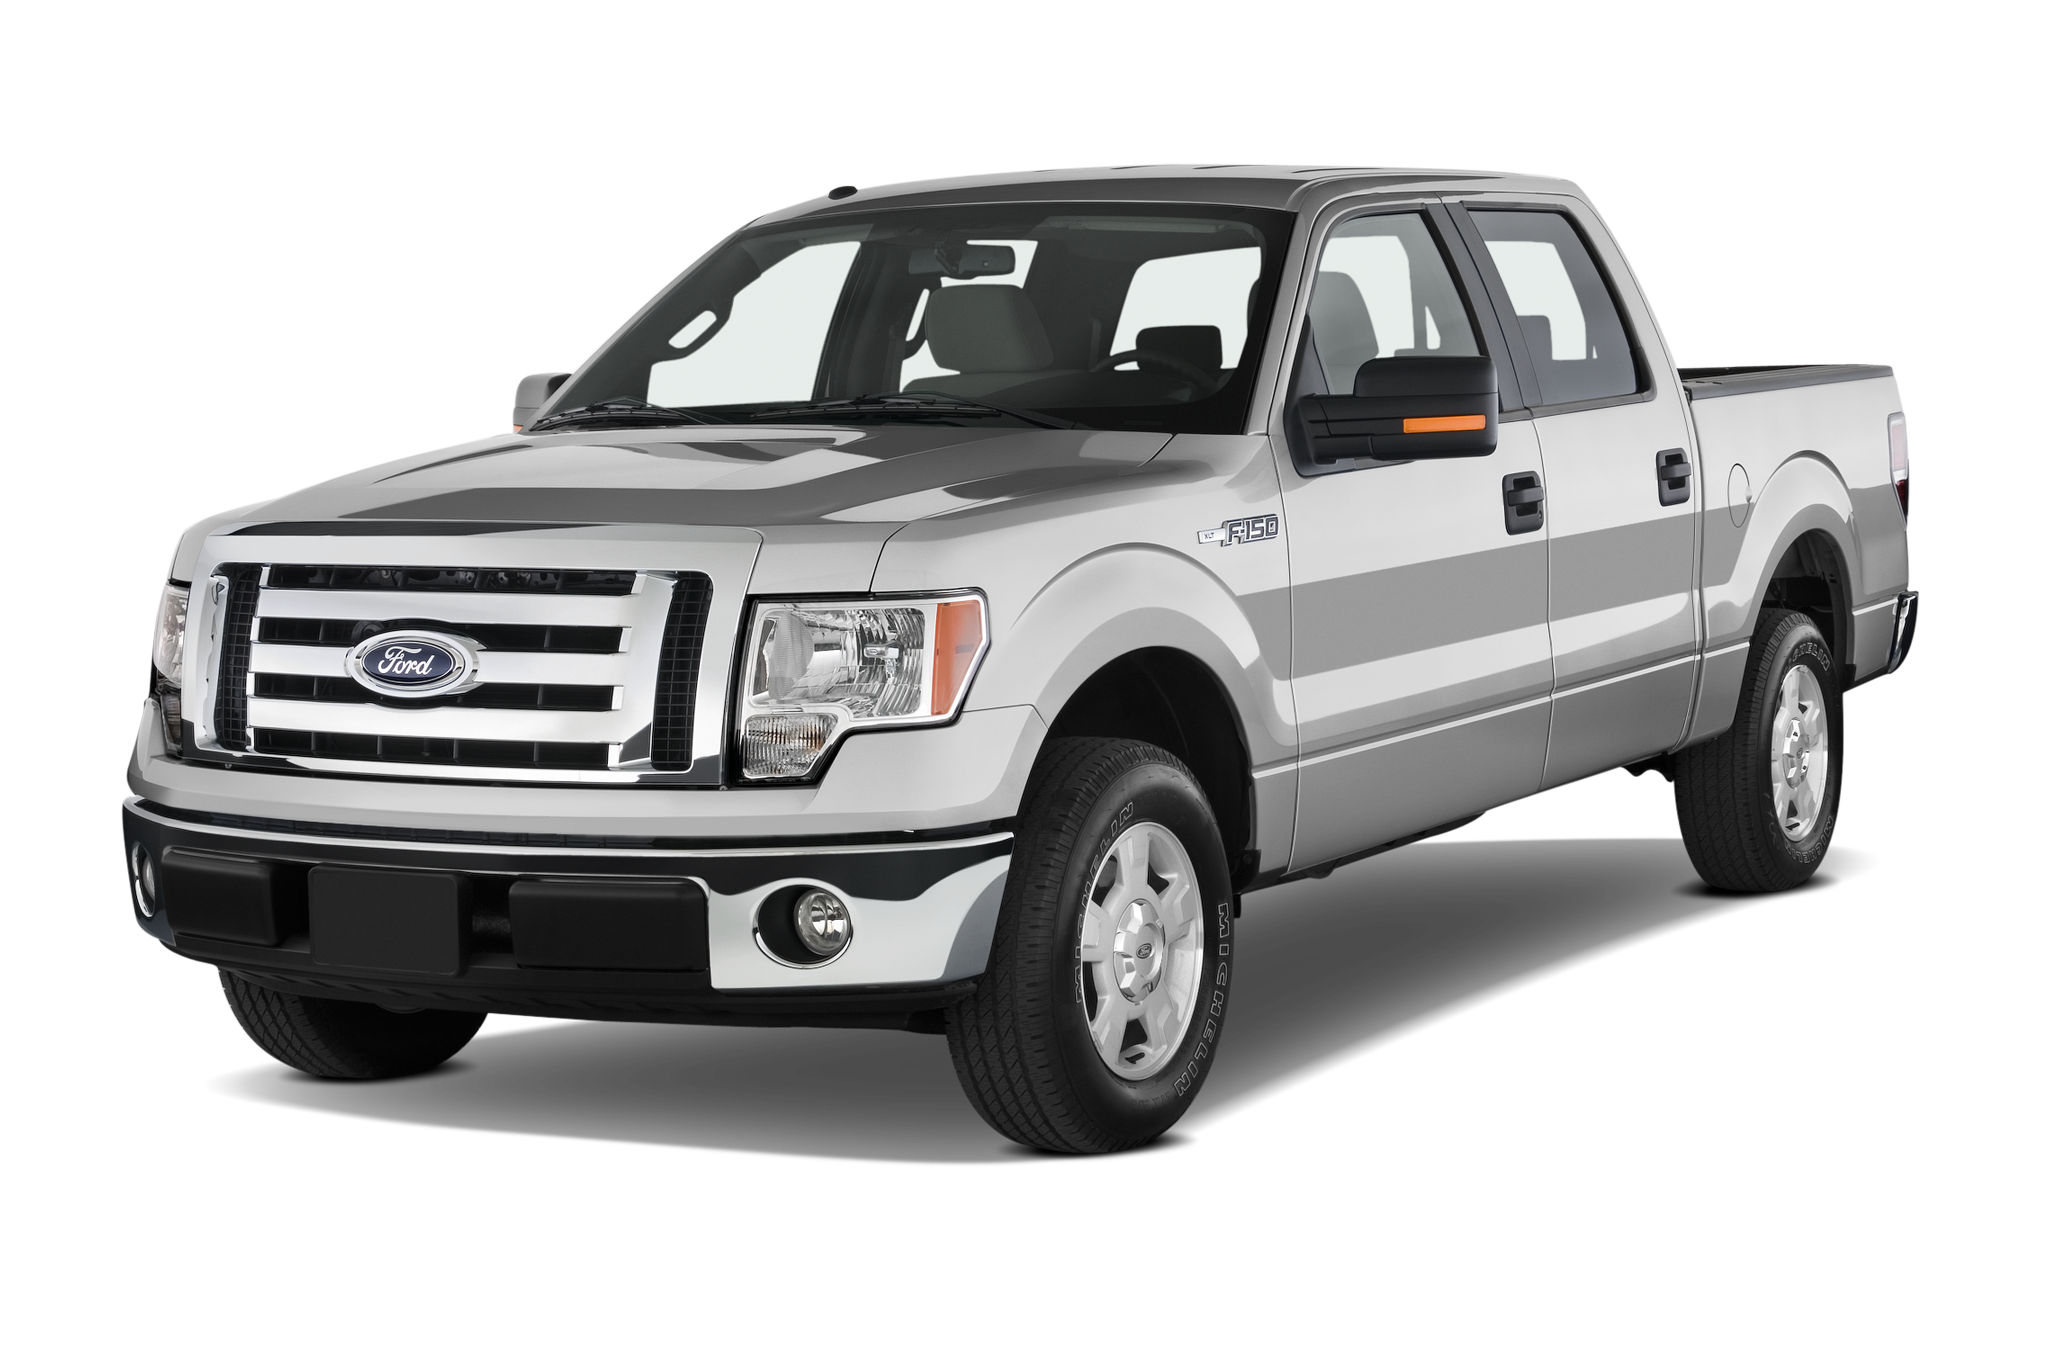 2012 Ford F-150 Reviews and Rating   Motortrend